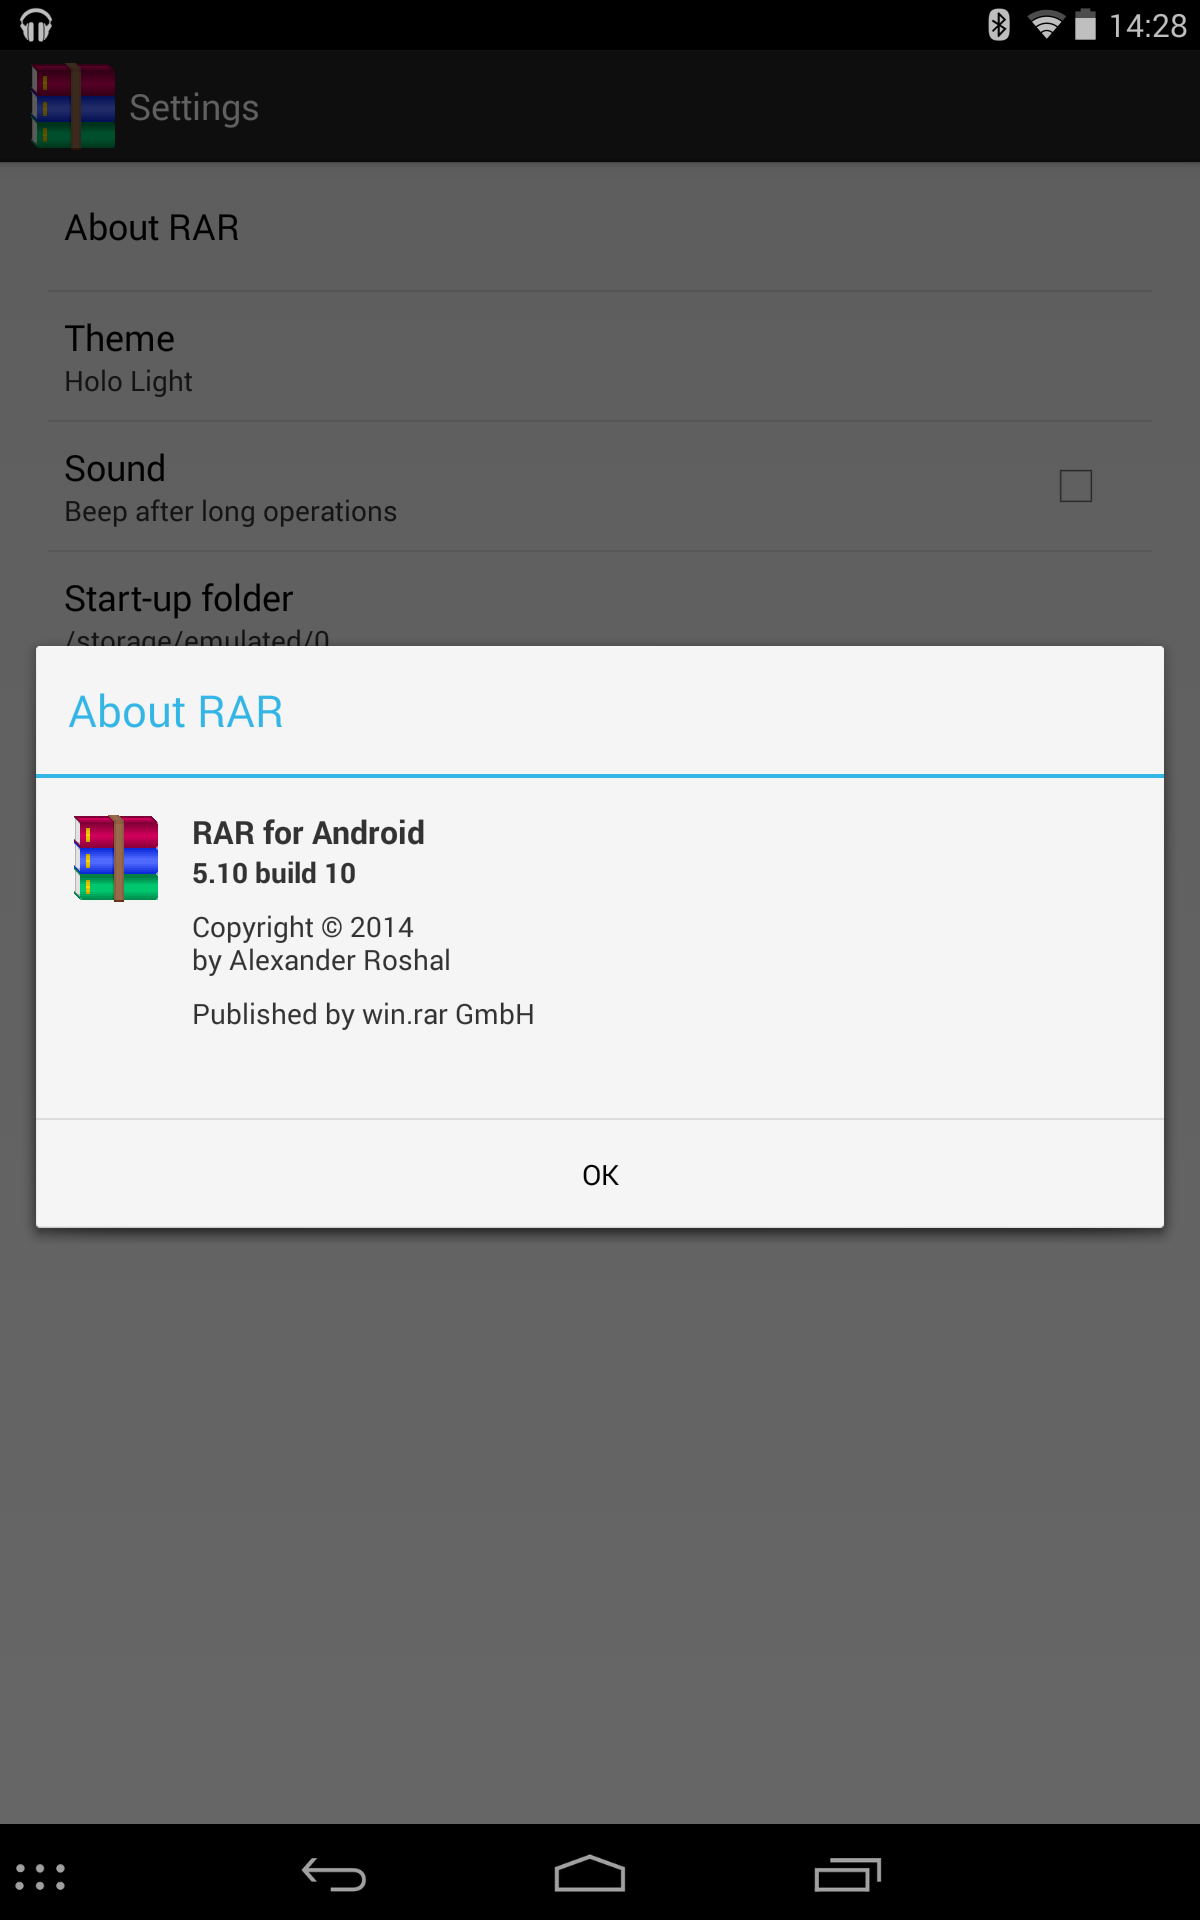 rar-for-android-about